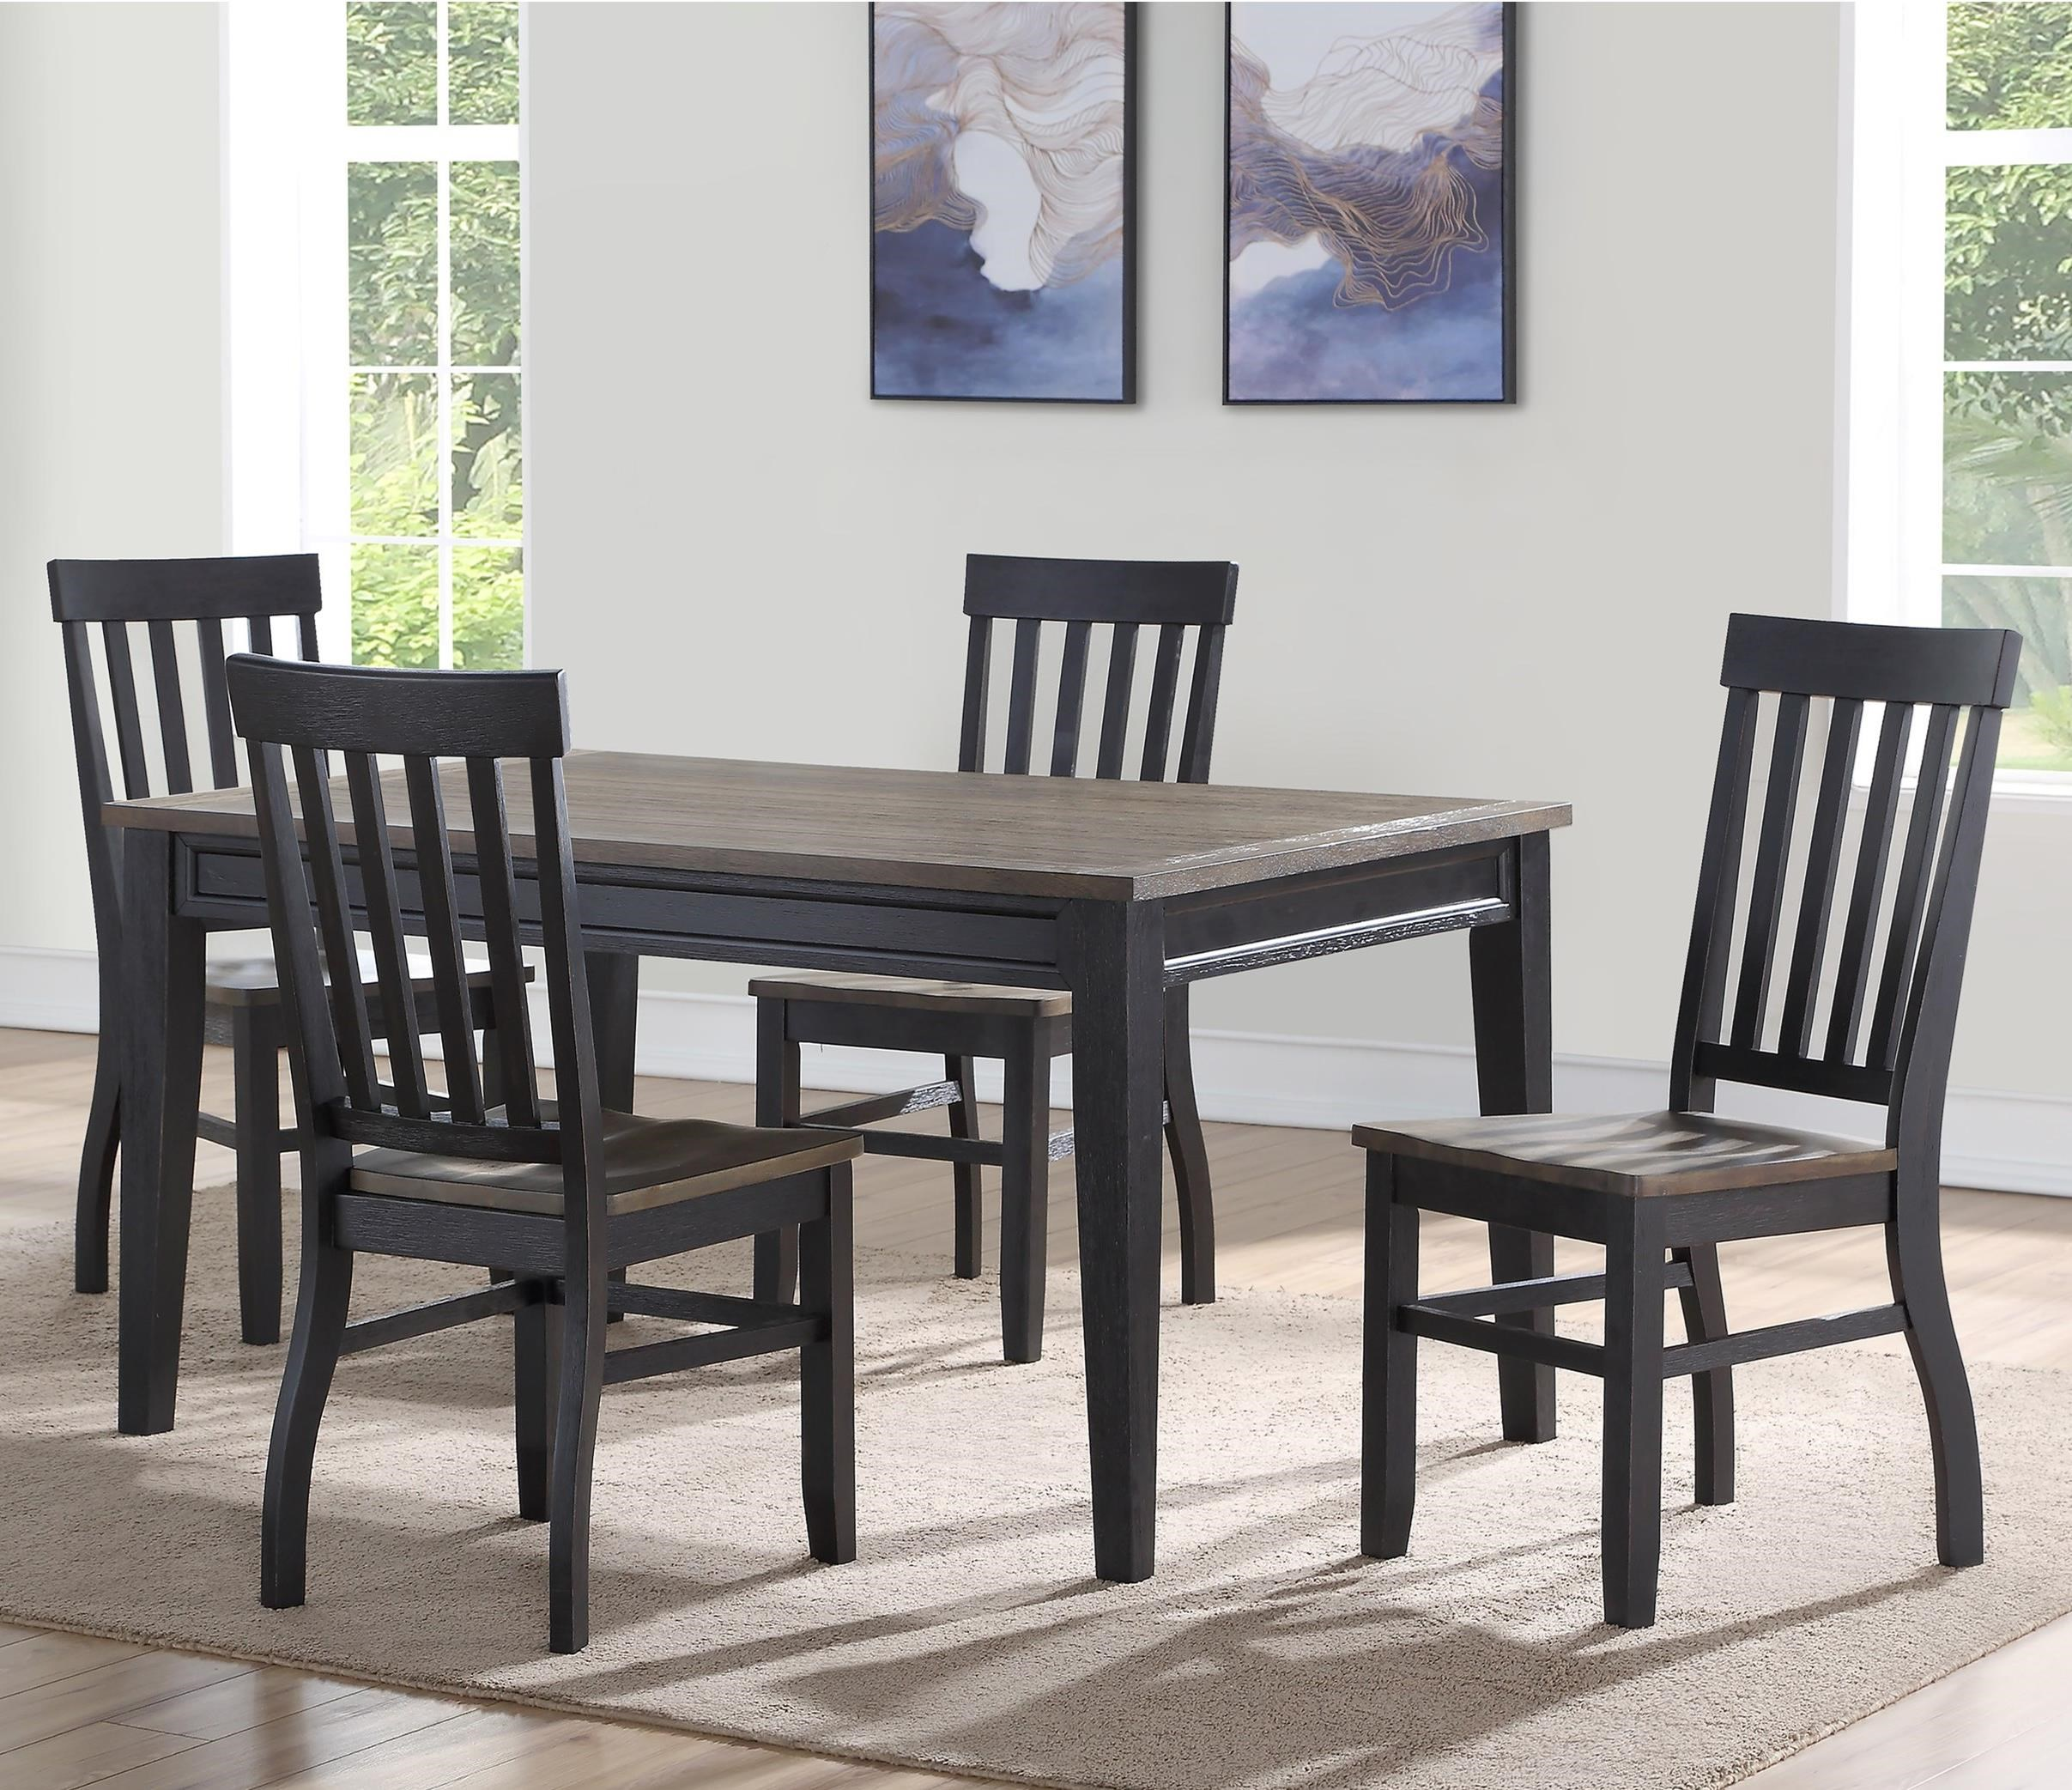 Raven 5 Pc Dining Set by Steve Silver at Walker's Furniture